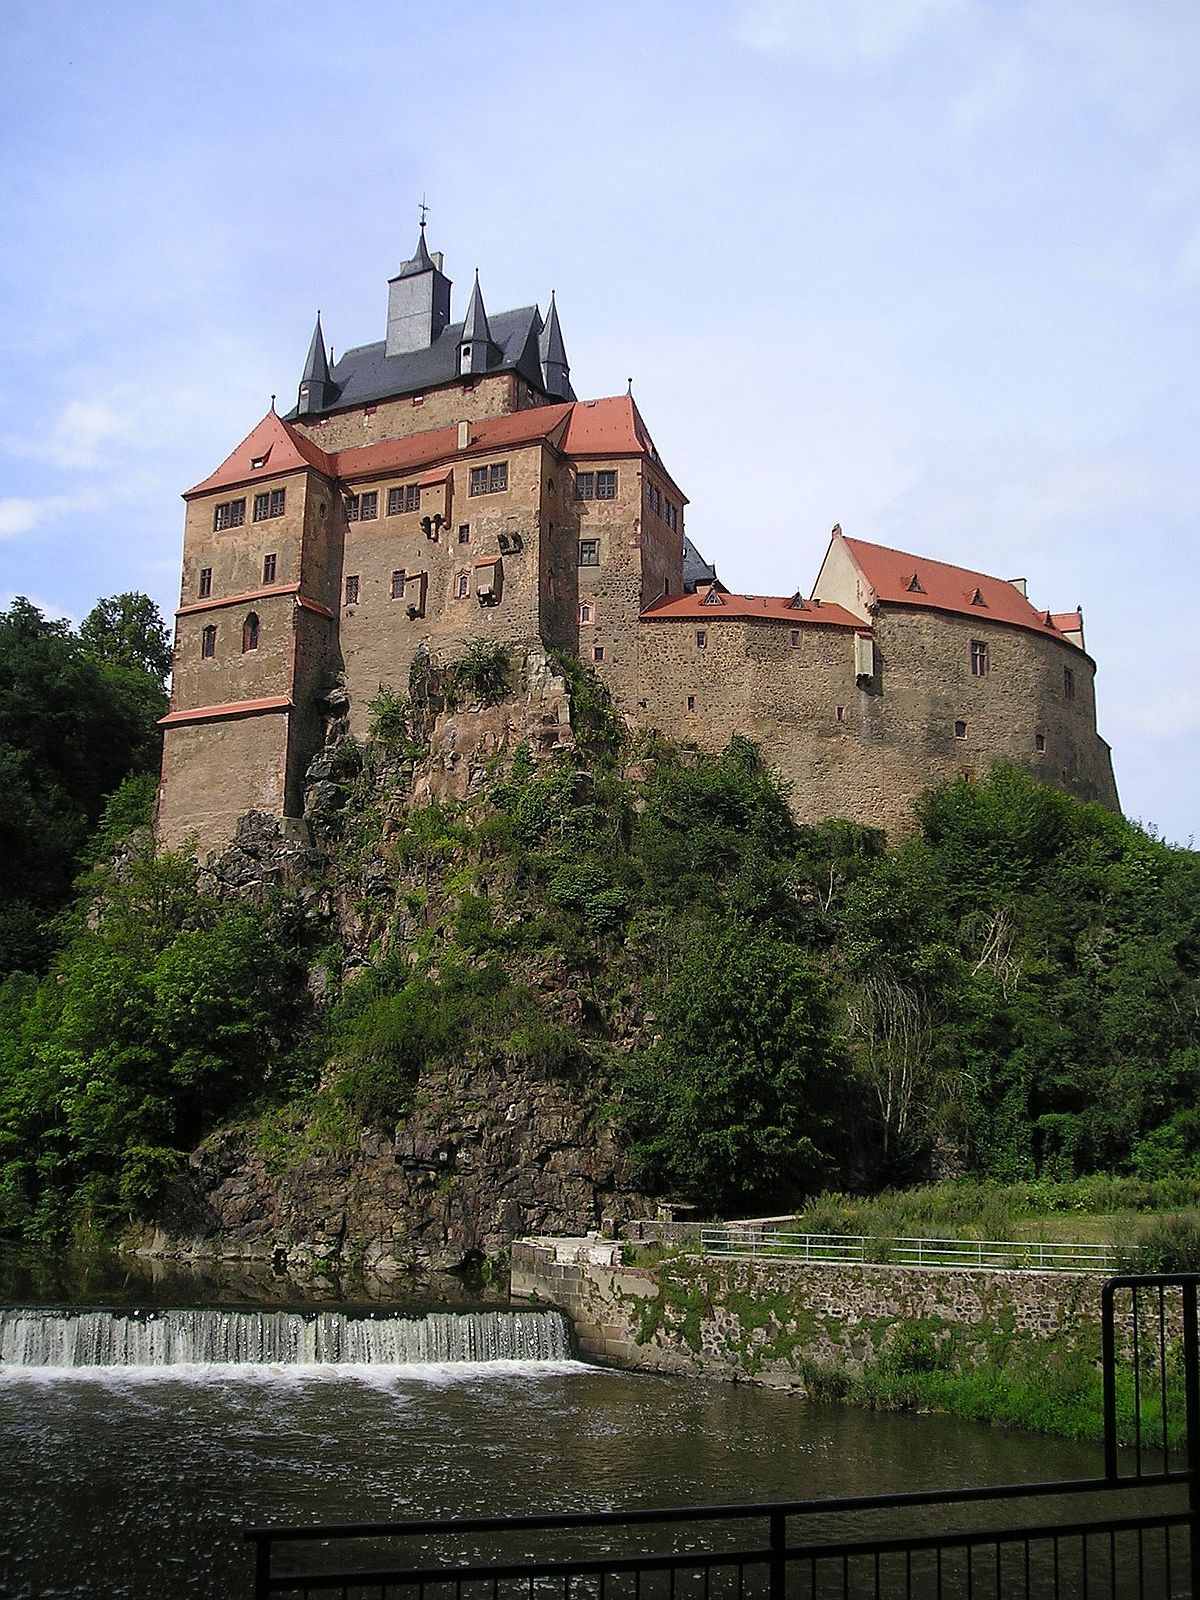 State Palaces, Castles and Gardens of Saxony.